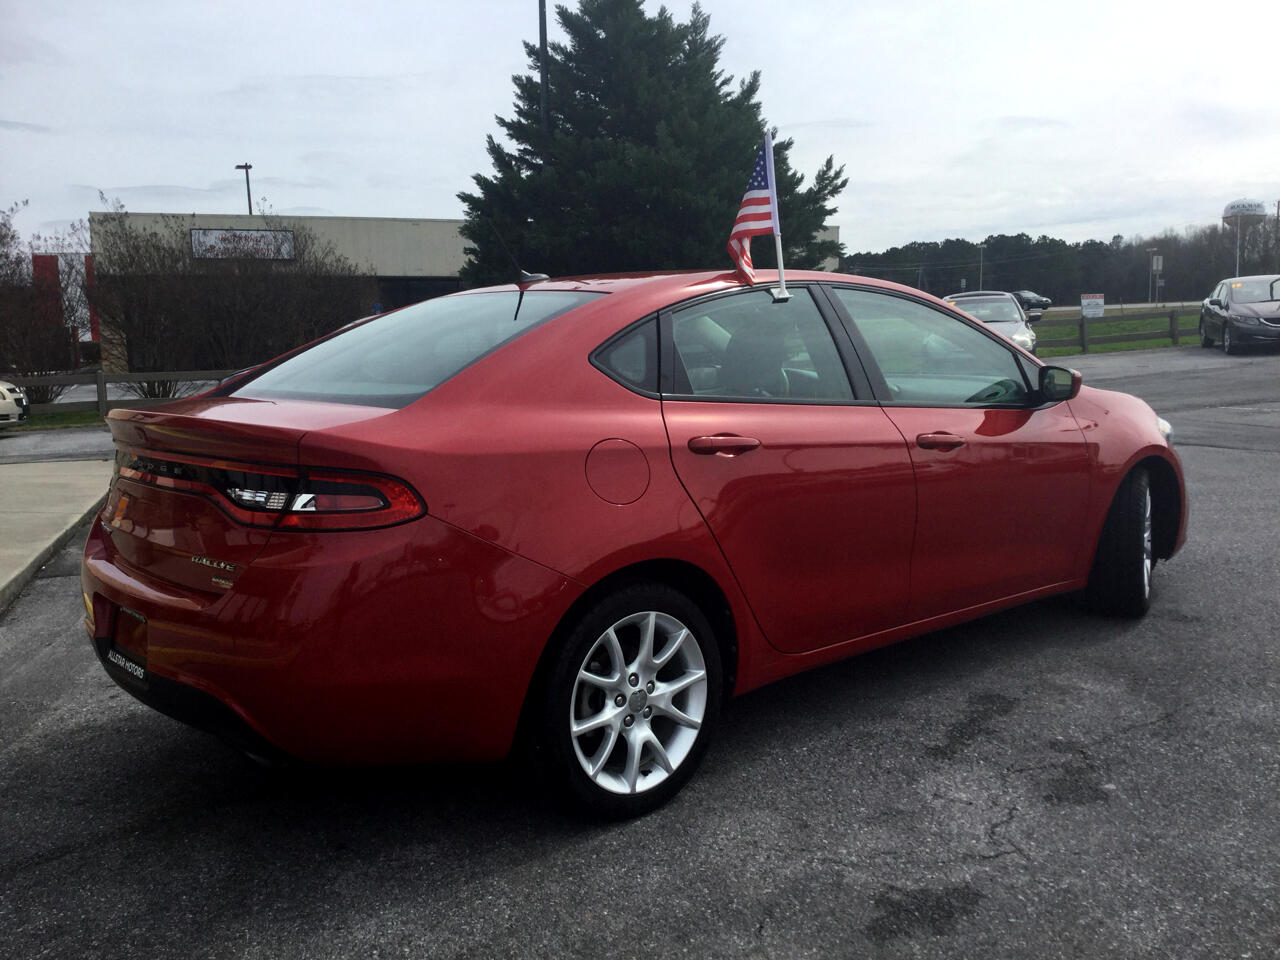 2013 Dodge Dart 4dr Sdn Turbo